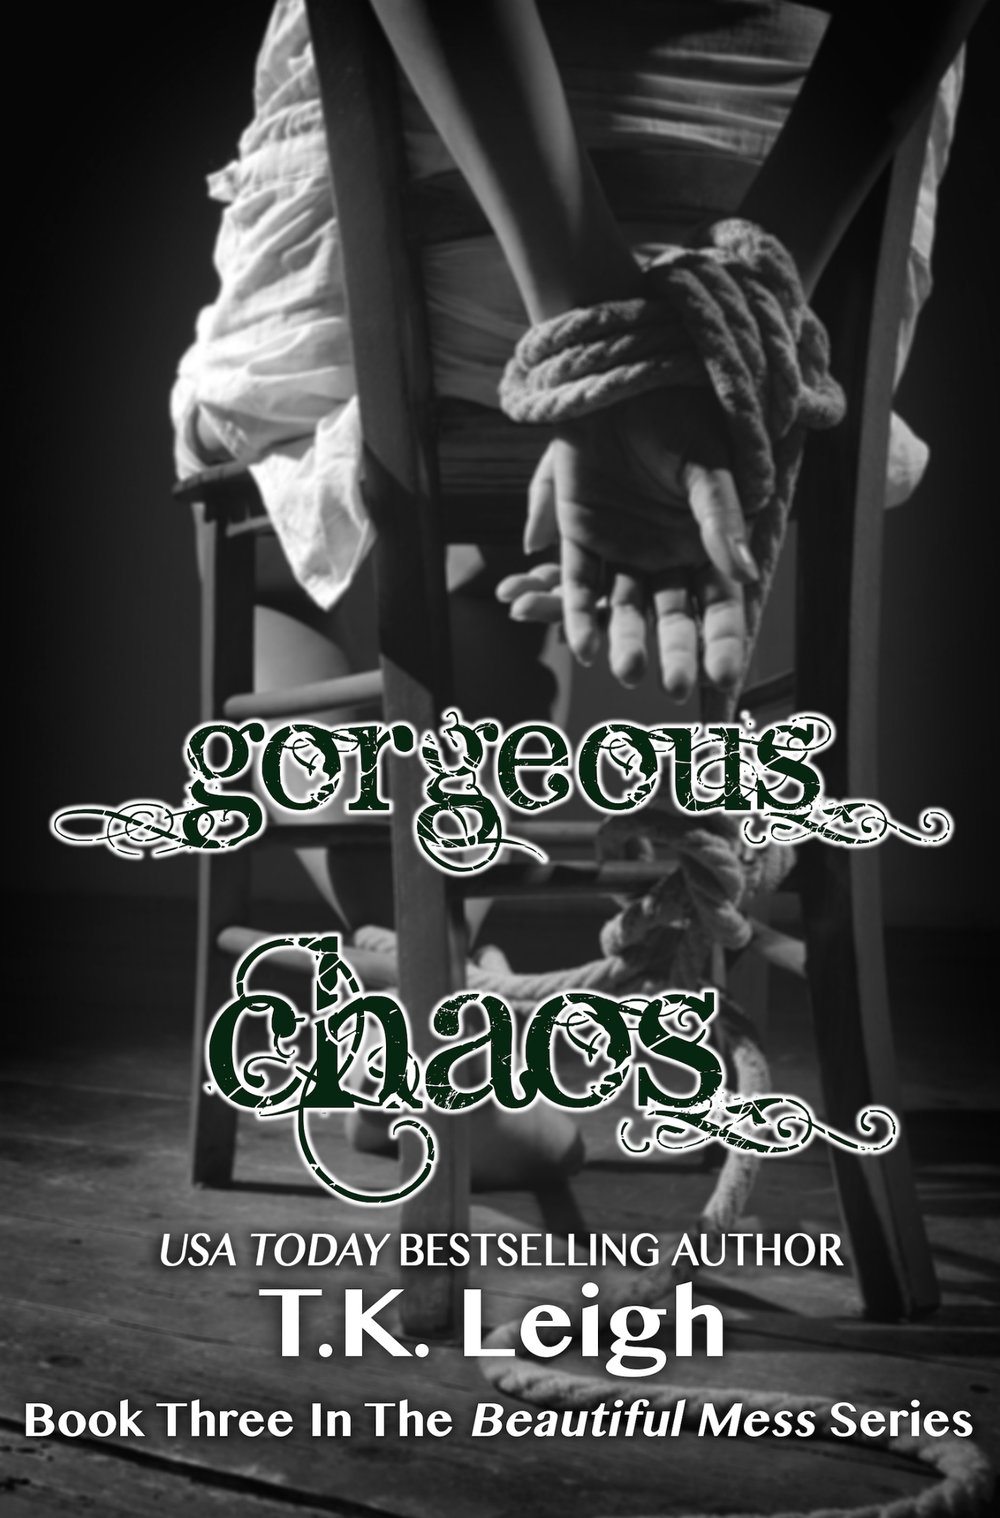 Gorgeous Chaos Ebook Cover.jpg